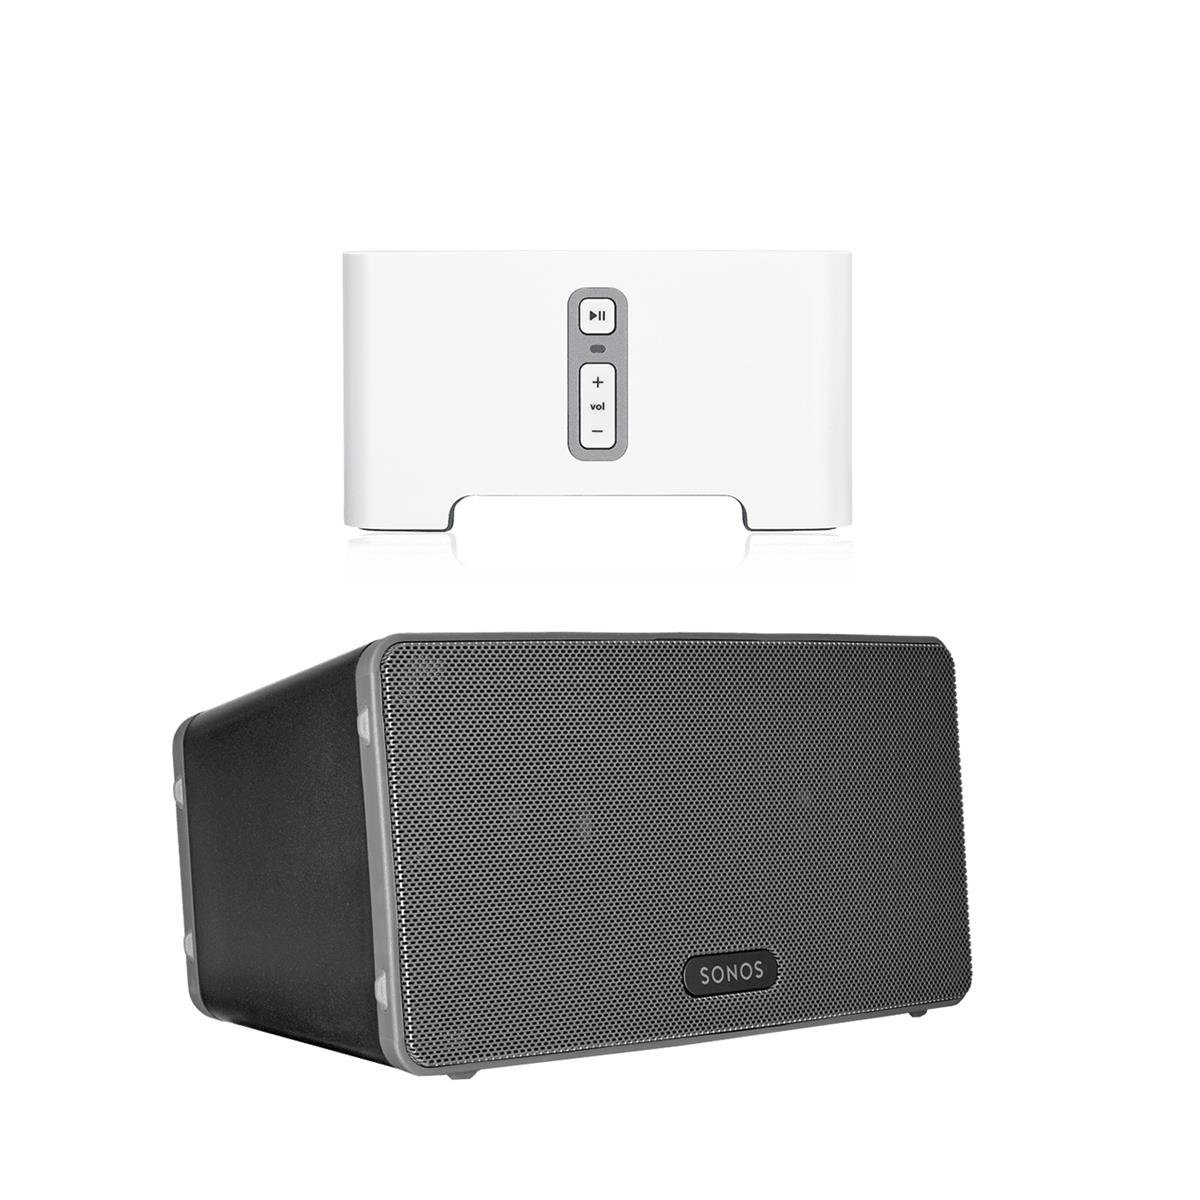 Sonos CONNECT Wireless Receiver for Streaming Music Bundle & Sonos PLAY:3 Wireless Speaker, Single - Black